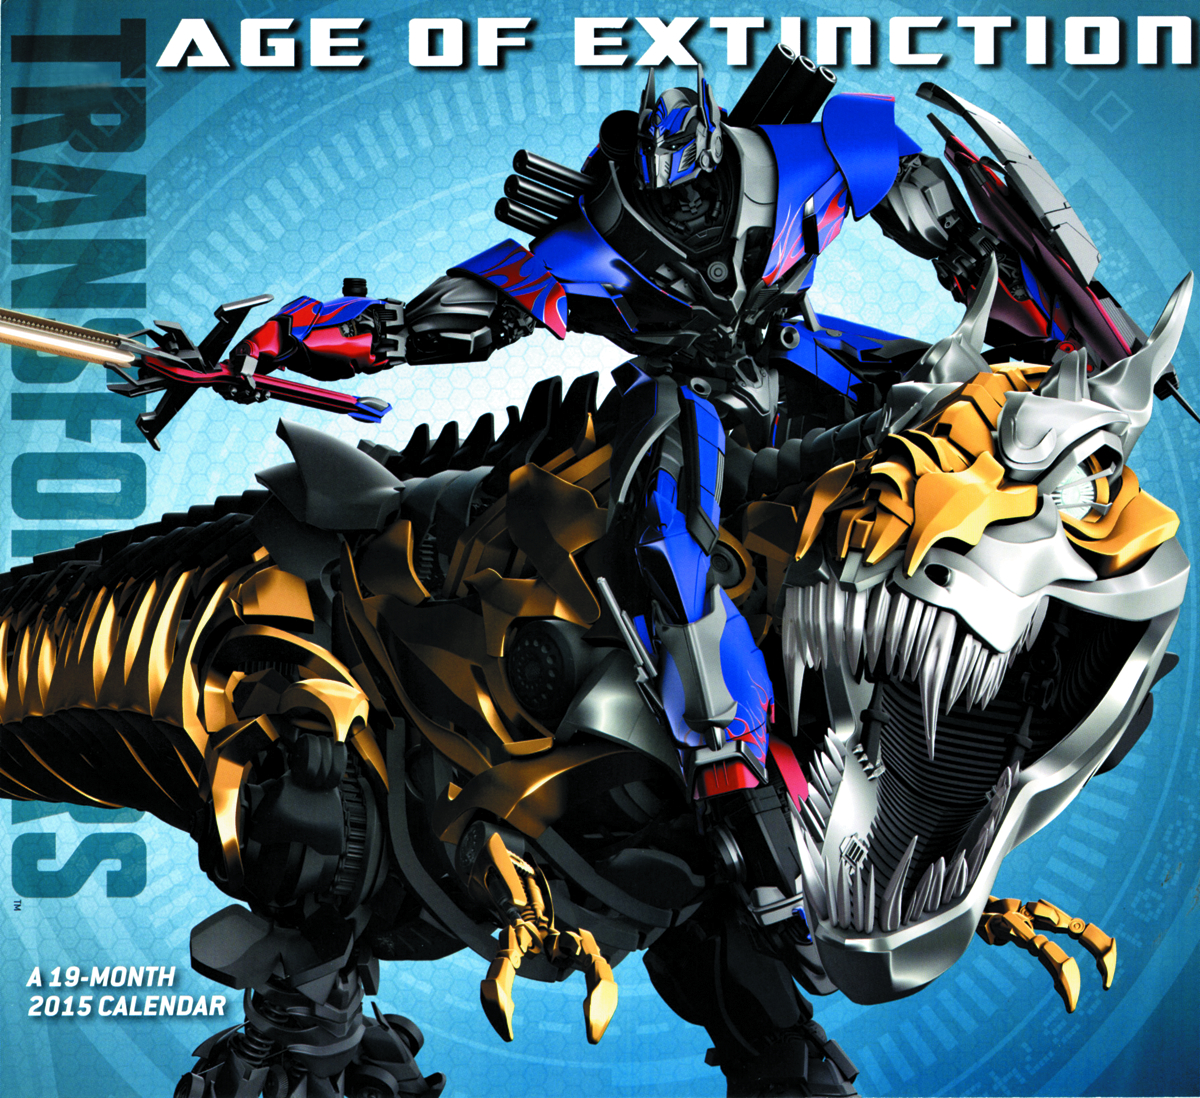 TRANSFORMERS AGE OF EXTINCTION MONTH 2015 WALL CAL